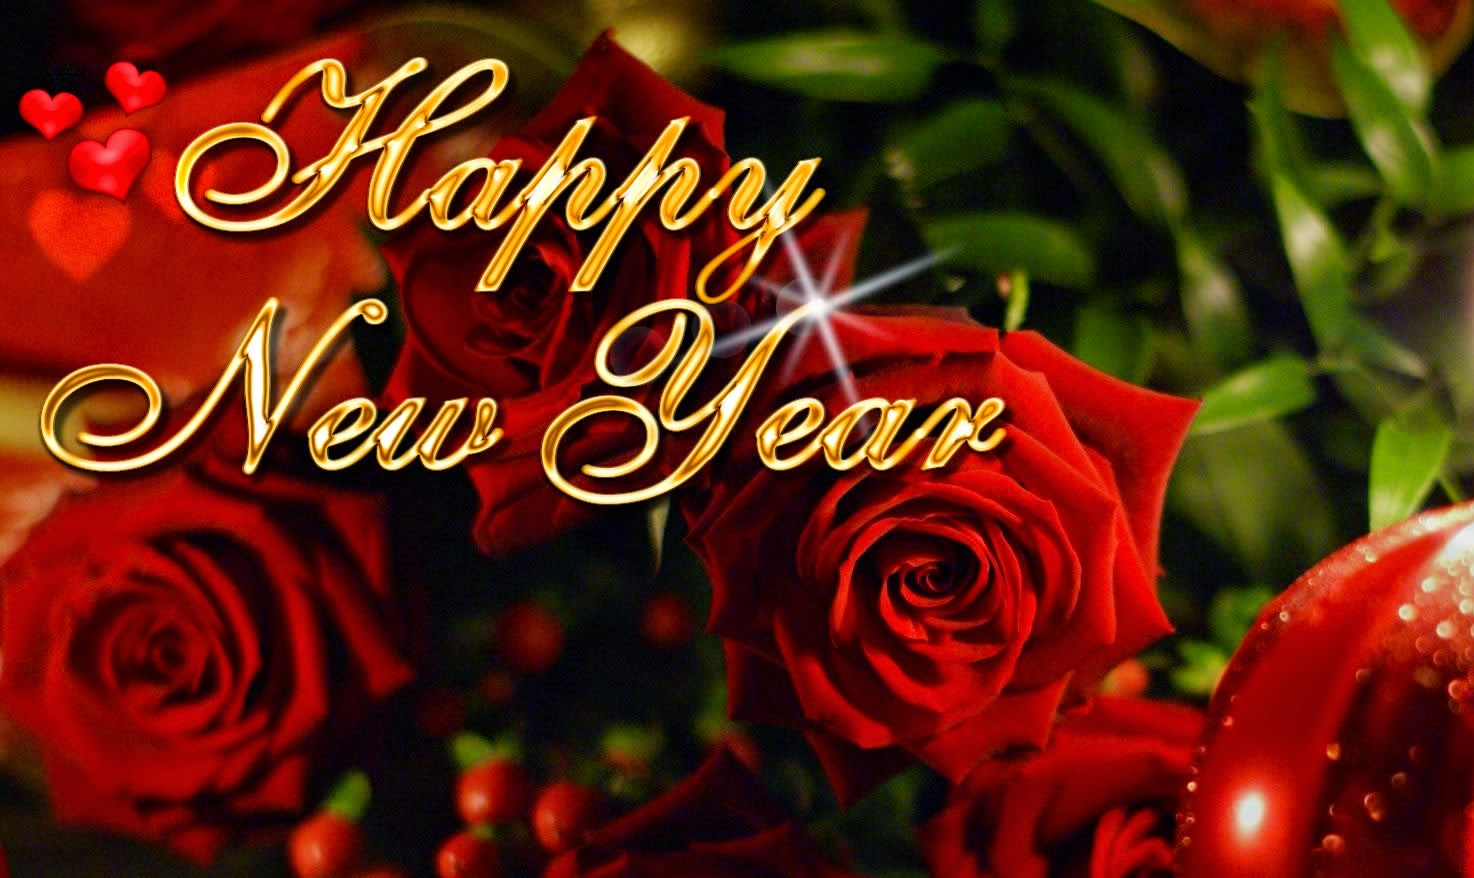 November 2014 happy new year wish in red flower kristyandbryce Images